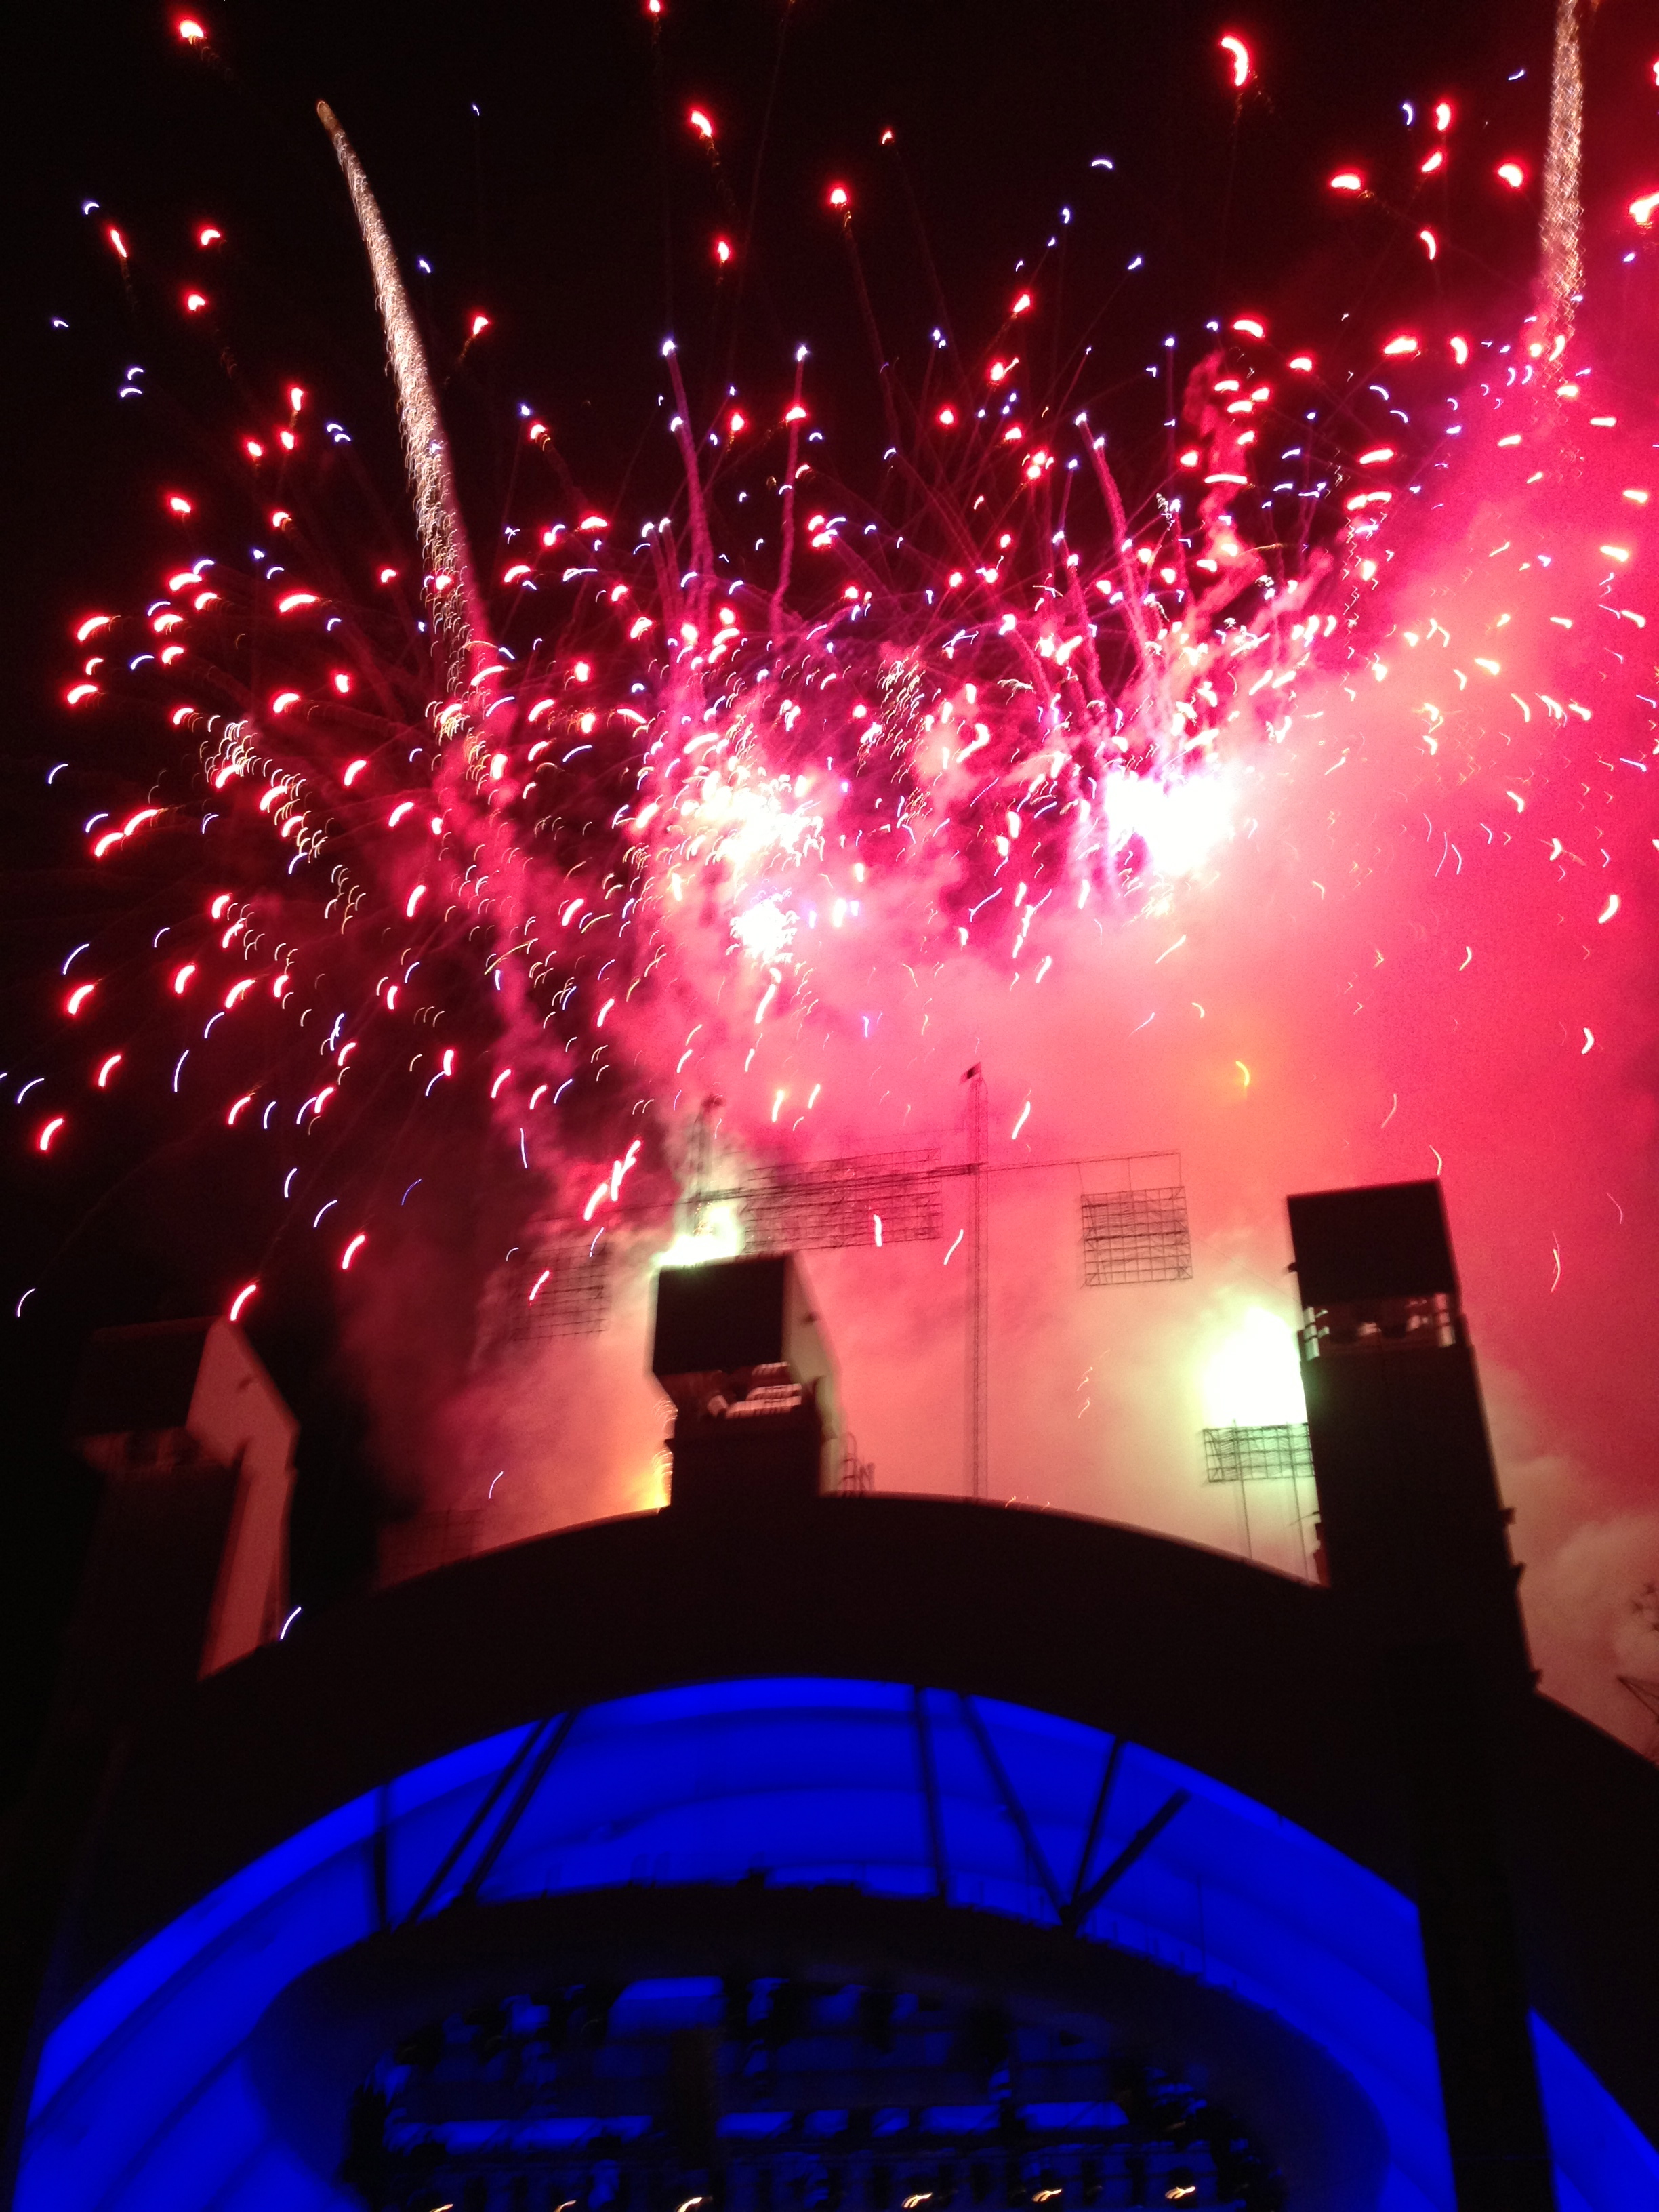 Fireworks at the Hollywood Bowl after the 4th of July performance by Josh Groban.